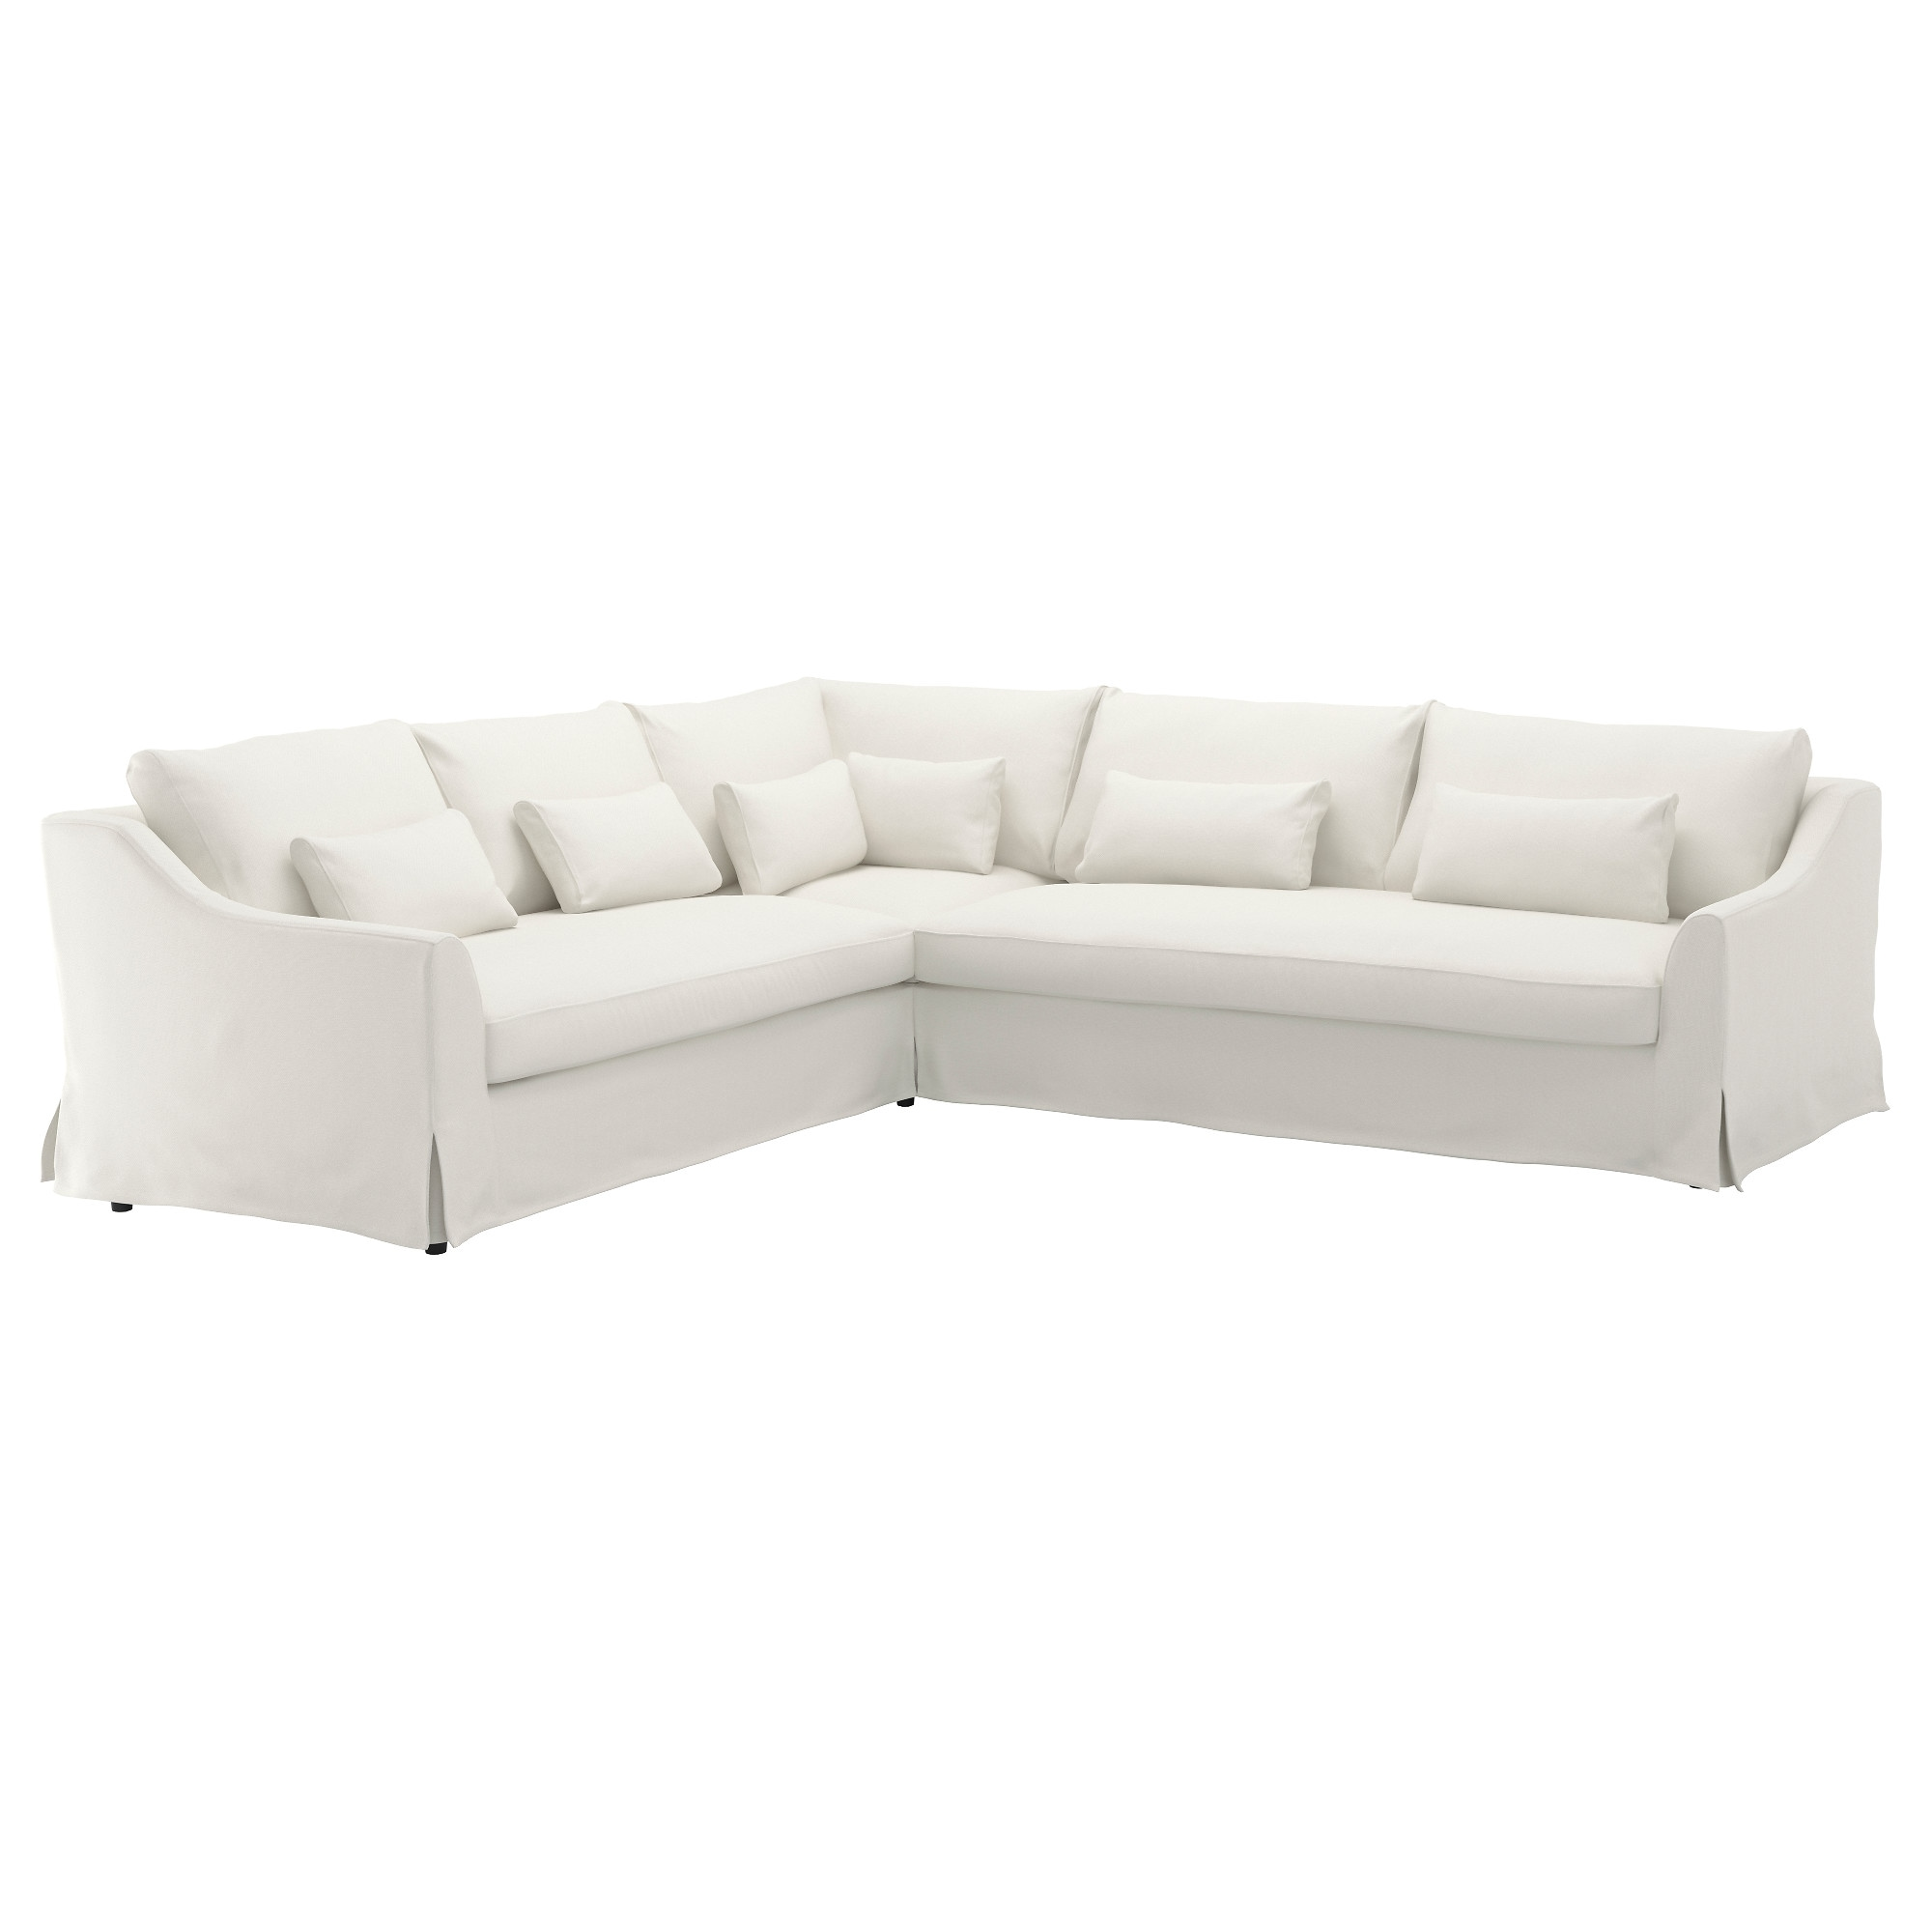 "F""RL–V Sectional 5 seat sofa right Flodafors beige IKEA"